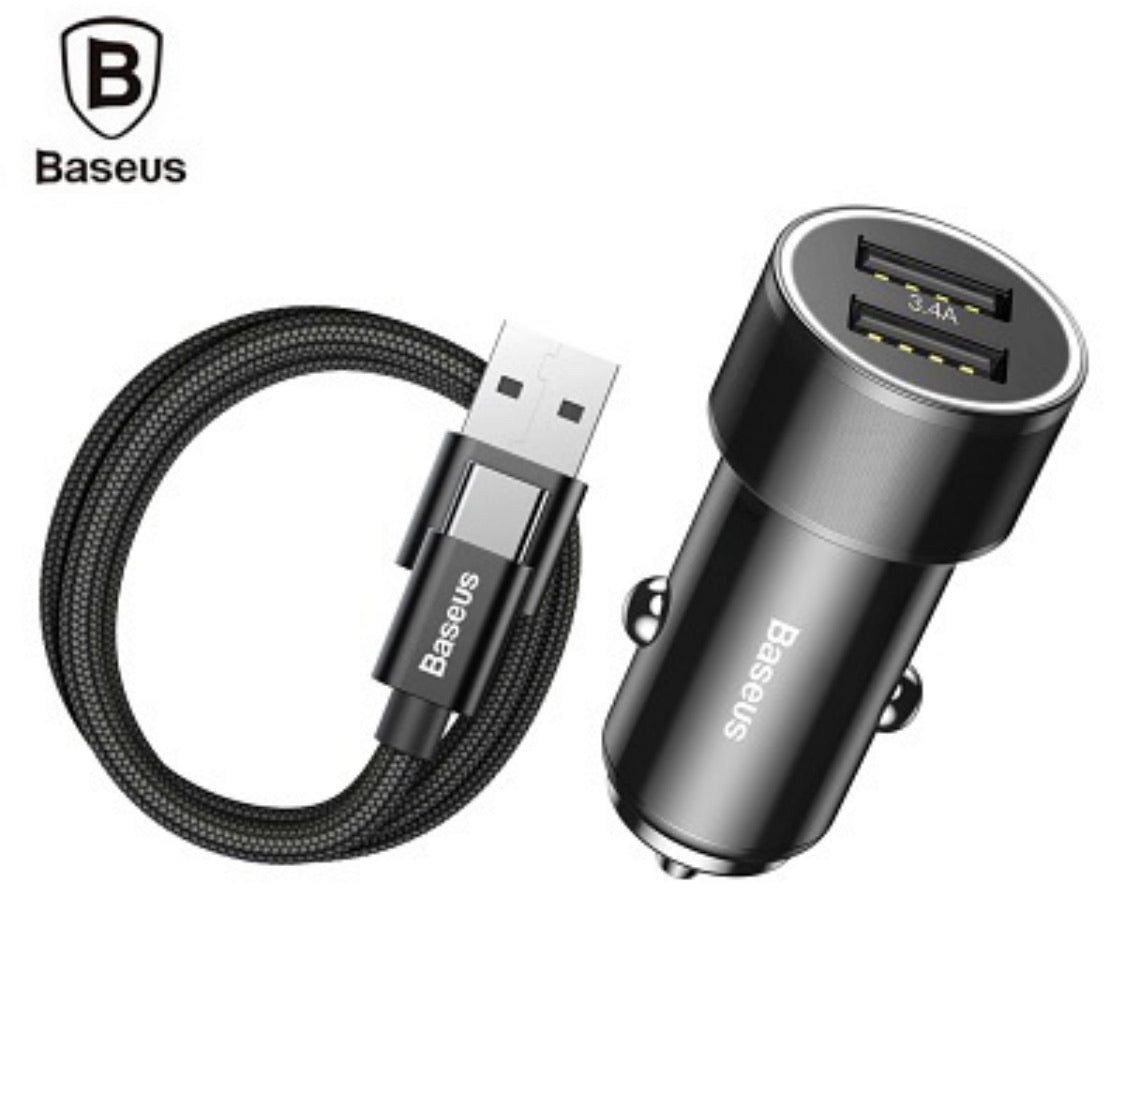 Baseus Small Screw Charging Set Dual USB Car Charger USB to Type C Cable 1M Dual USB 3.4A For Xiaomi Huawei LG G5 Car Charger